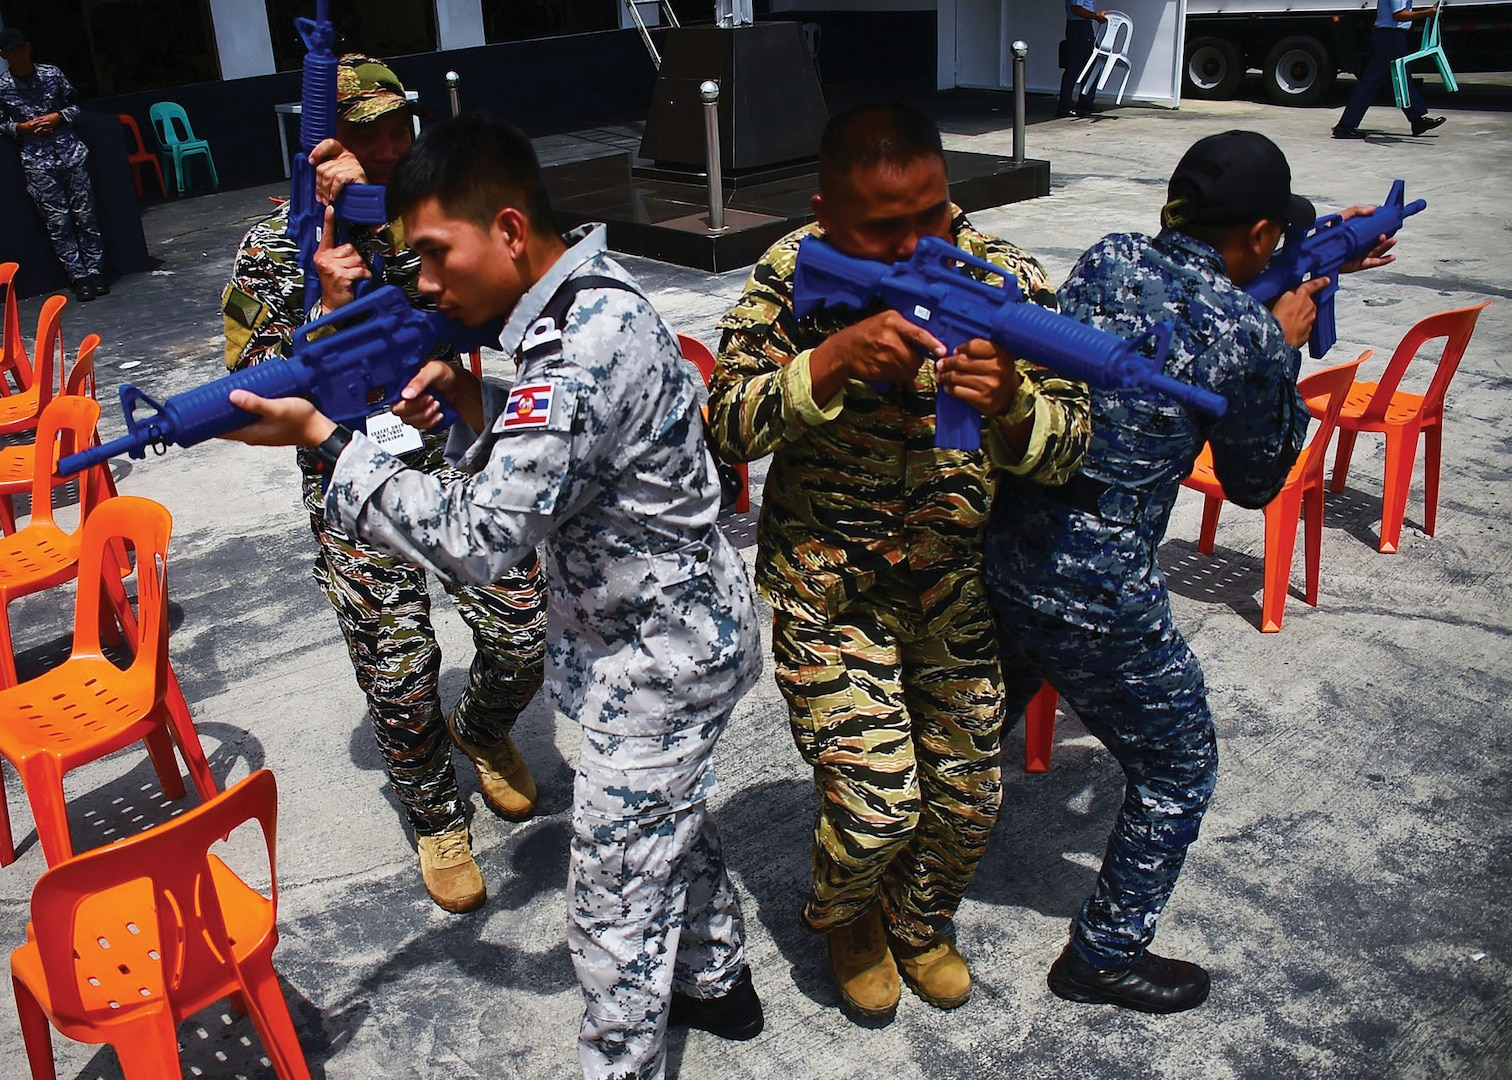 """In August, a Royal Thai Coast Guardsman (left), A Philippine sailor (center), and a Philippine Coast Guardsman practice tactical visit, search, and seizure procedures during the Southeast Asia Cooperation and Training (SEACAT) exercise that included participants from nine partner nations. SEACAT began in 2002 under the name """"Southeast Asia Cooperation Against Terrorism"""" but was renamed in 2012 to expand the scope of training among regional navies and coast guards. (DOD/Micah Blechner)"""